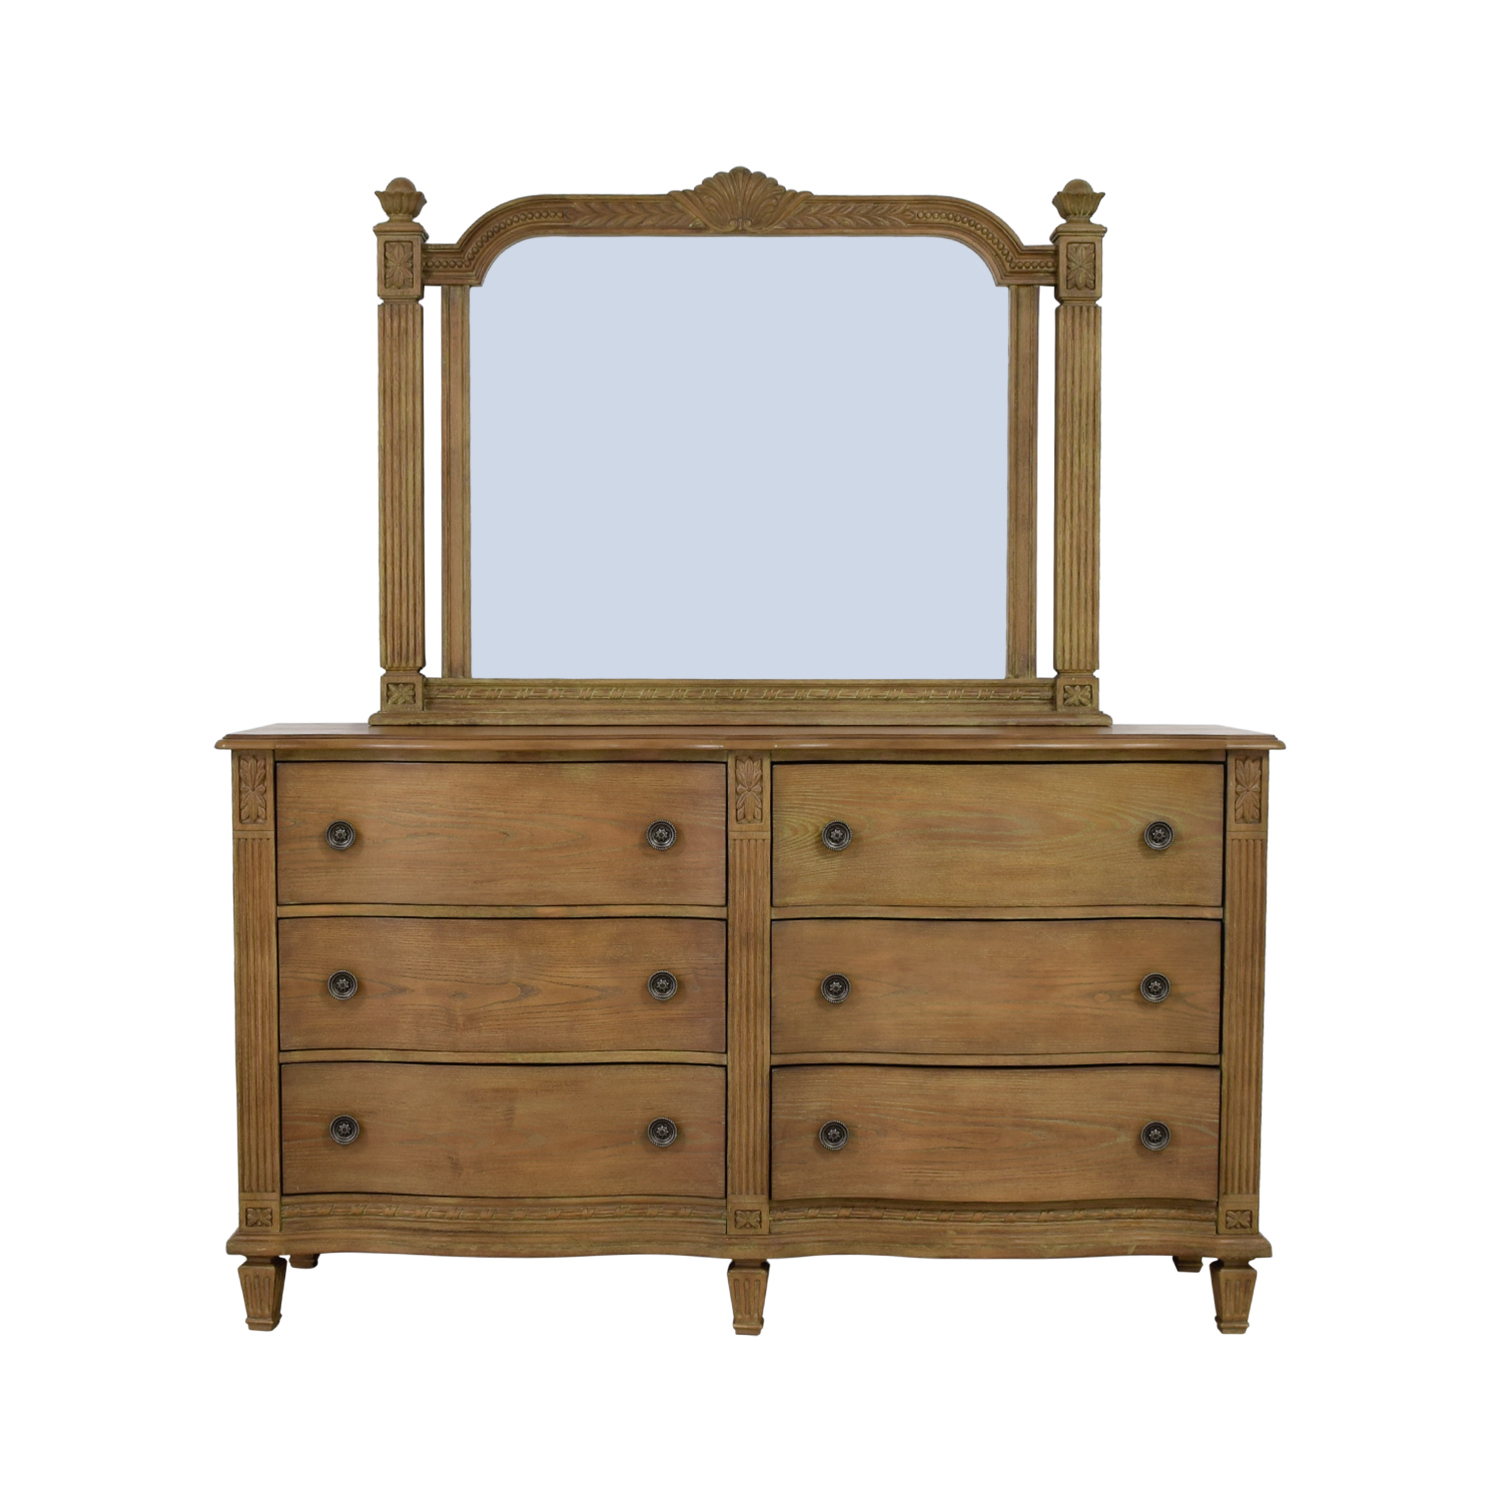 Raymour & Flanigan Raymour & Flanigan Natural Six-Drawer Dresser LIGHT BROWN